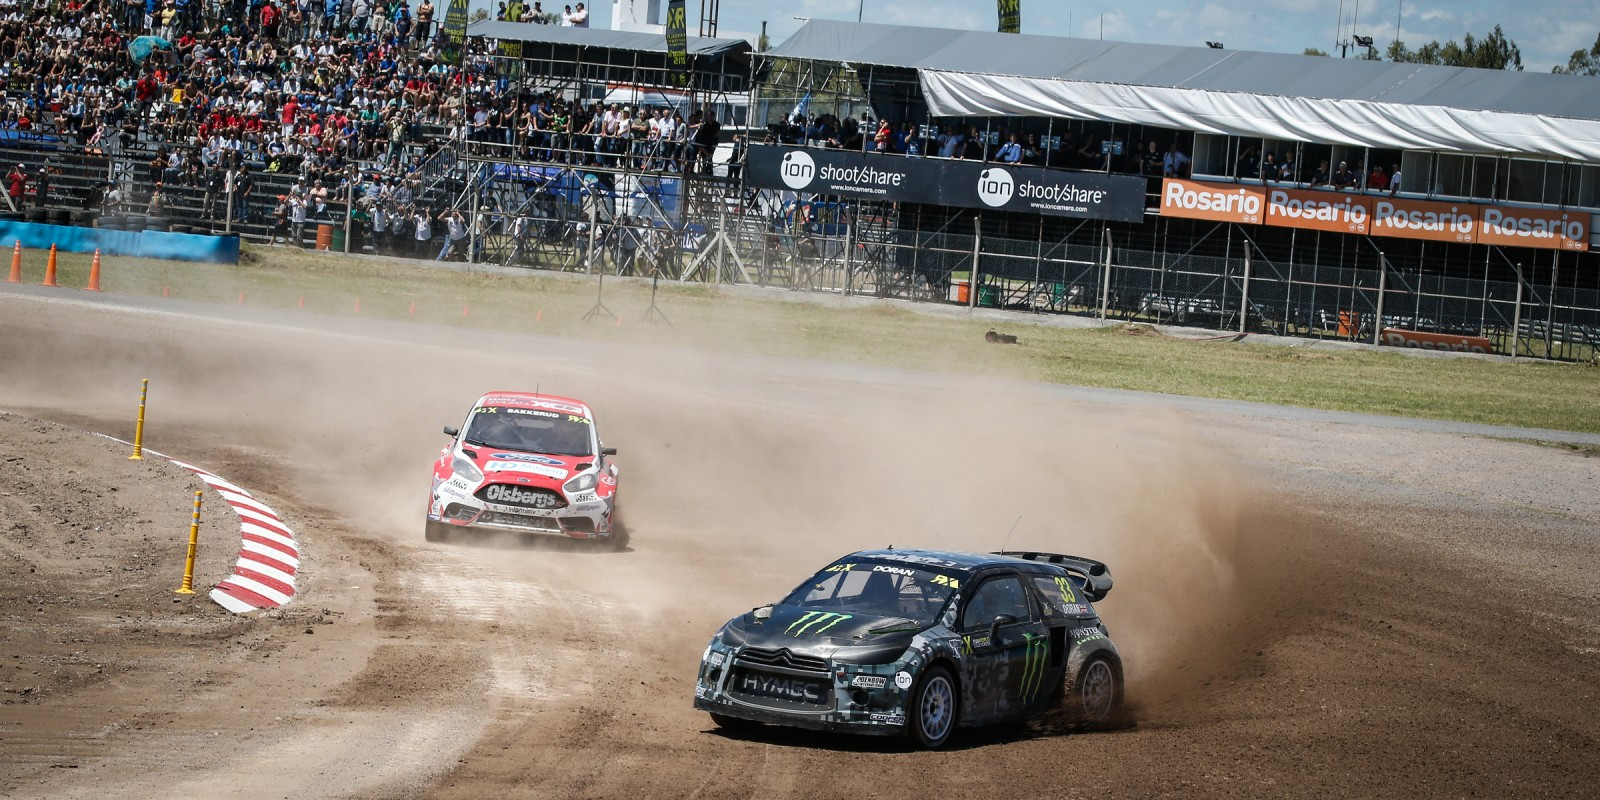 Liam Doran at the 2015 World Rallycross in Argentina